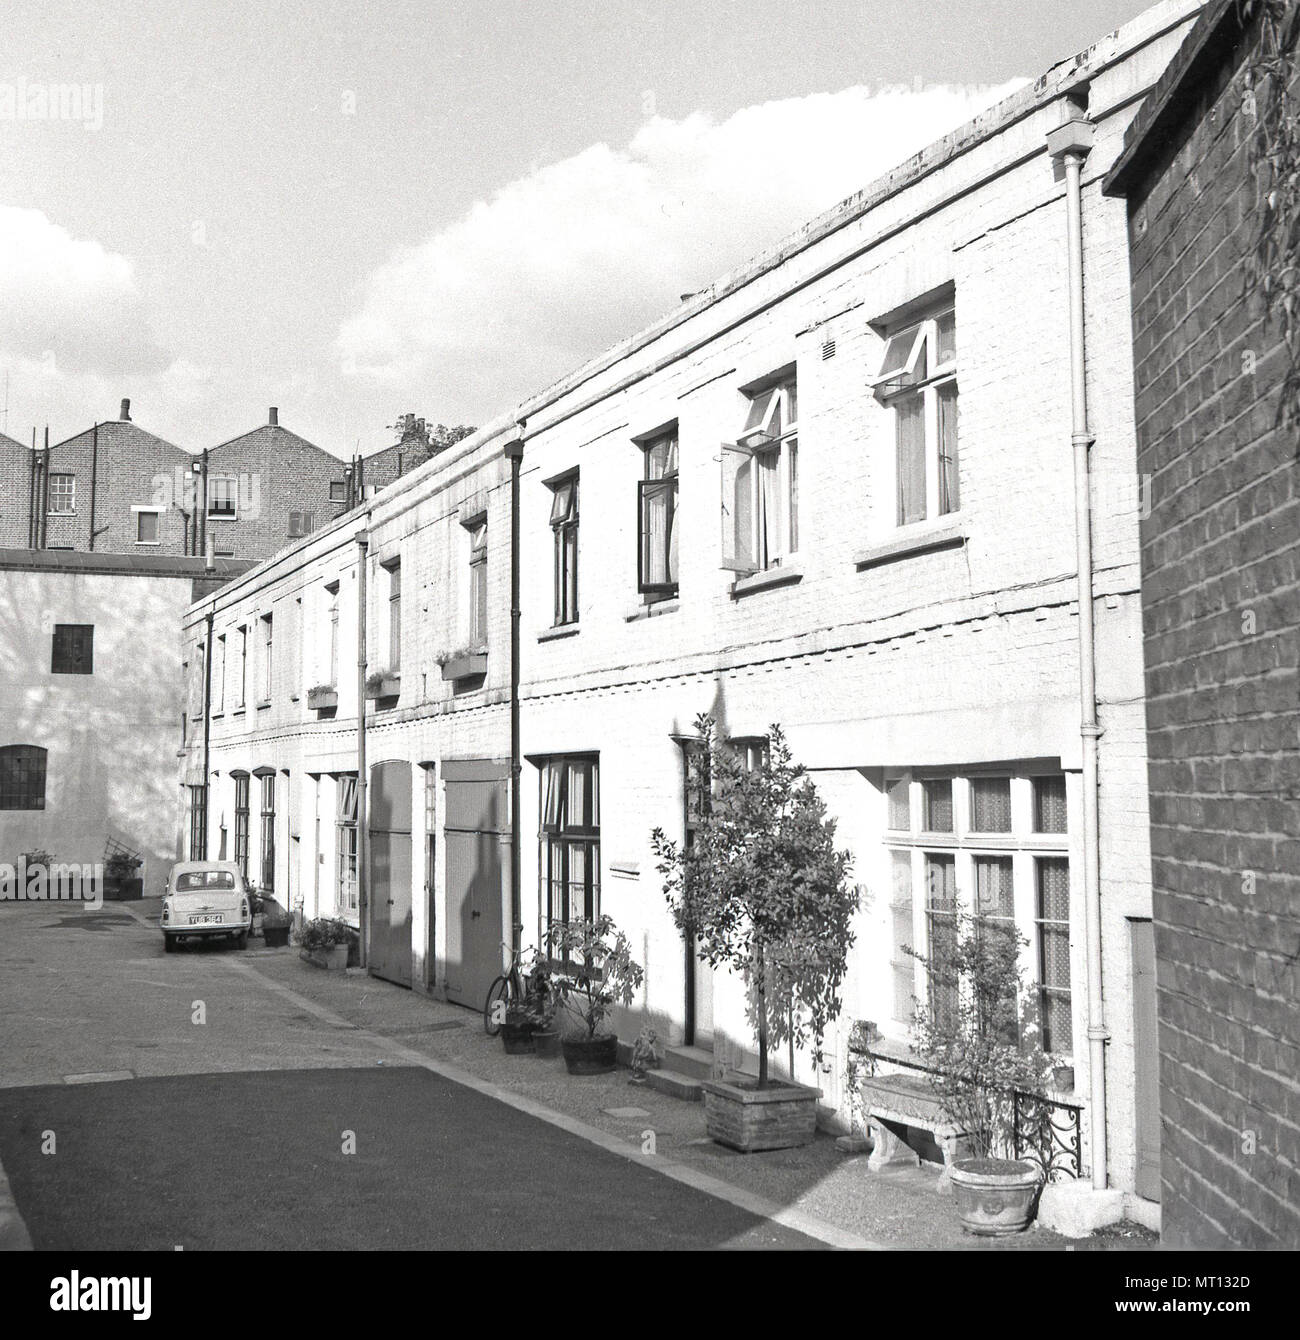 1960s, London, a row of small mews houses. These low-rise, two-storey dwellings were converted from former coach houses or stables and built behind larger city houses in service streets. As the name suggests they were originally built for the horse transport of the wealthy city dwellers. The introduction of the motorcar saw the and of the equestrian usage and in this era they became a fashionable place to live, - Stock Image